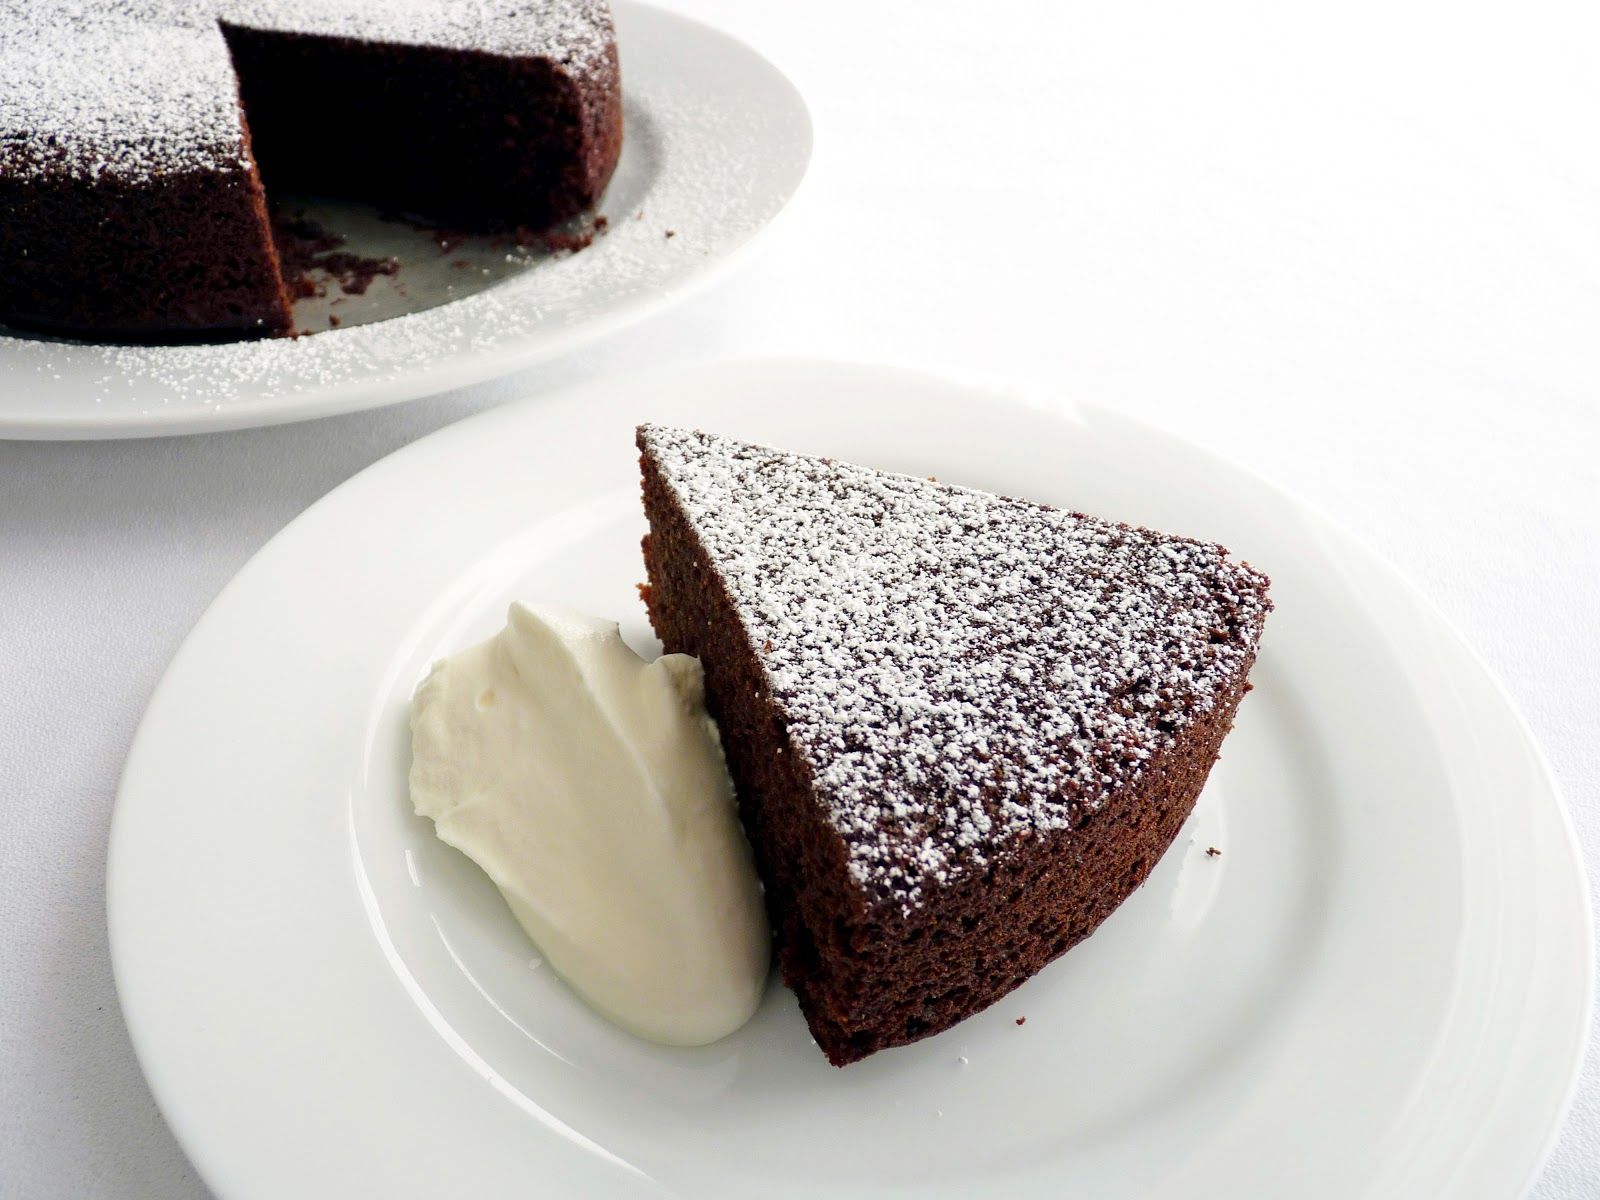 pastry studio: Chocolate Stout Cake